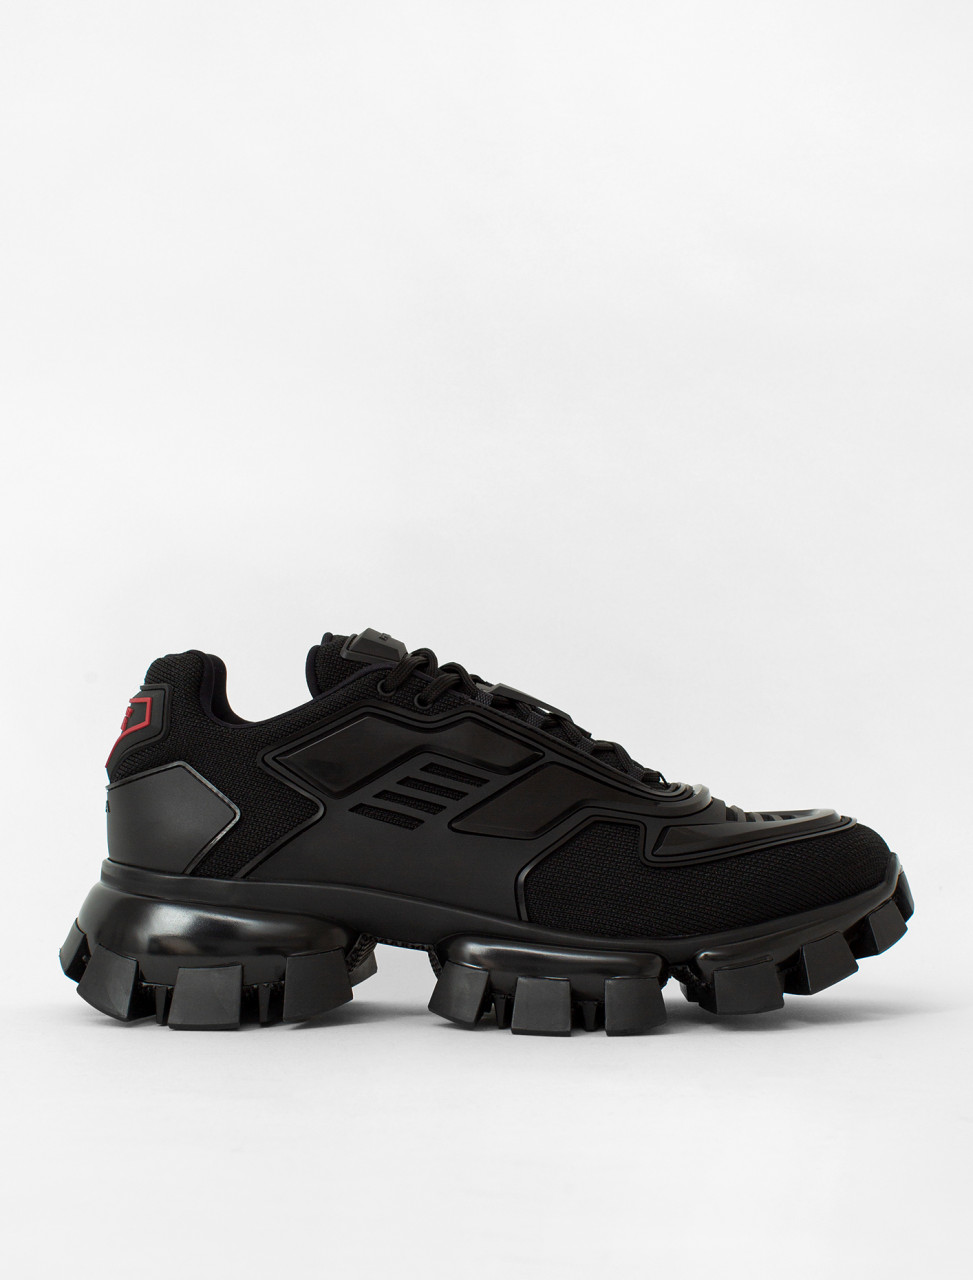 Prada Cloudbust Thunder Knit Menswear Sneaker in Black